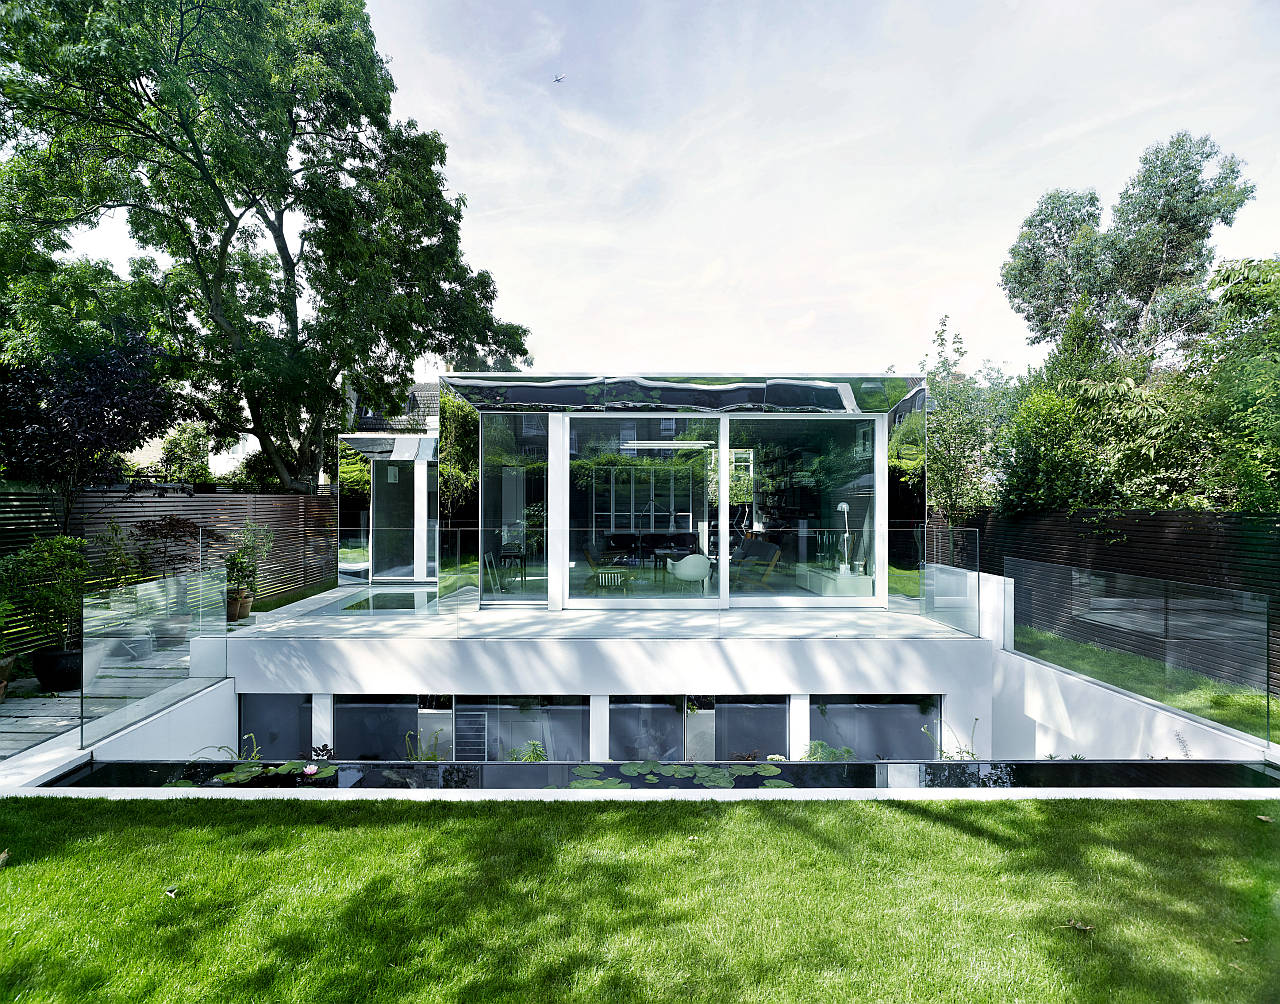 Covert House by DSDHA in Clapham Old Town, London, England : Photo credit © Christoffer Rudquist